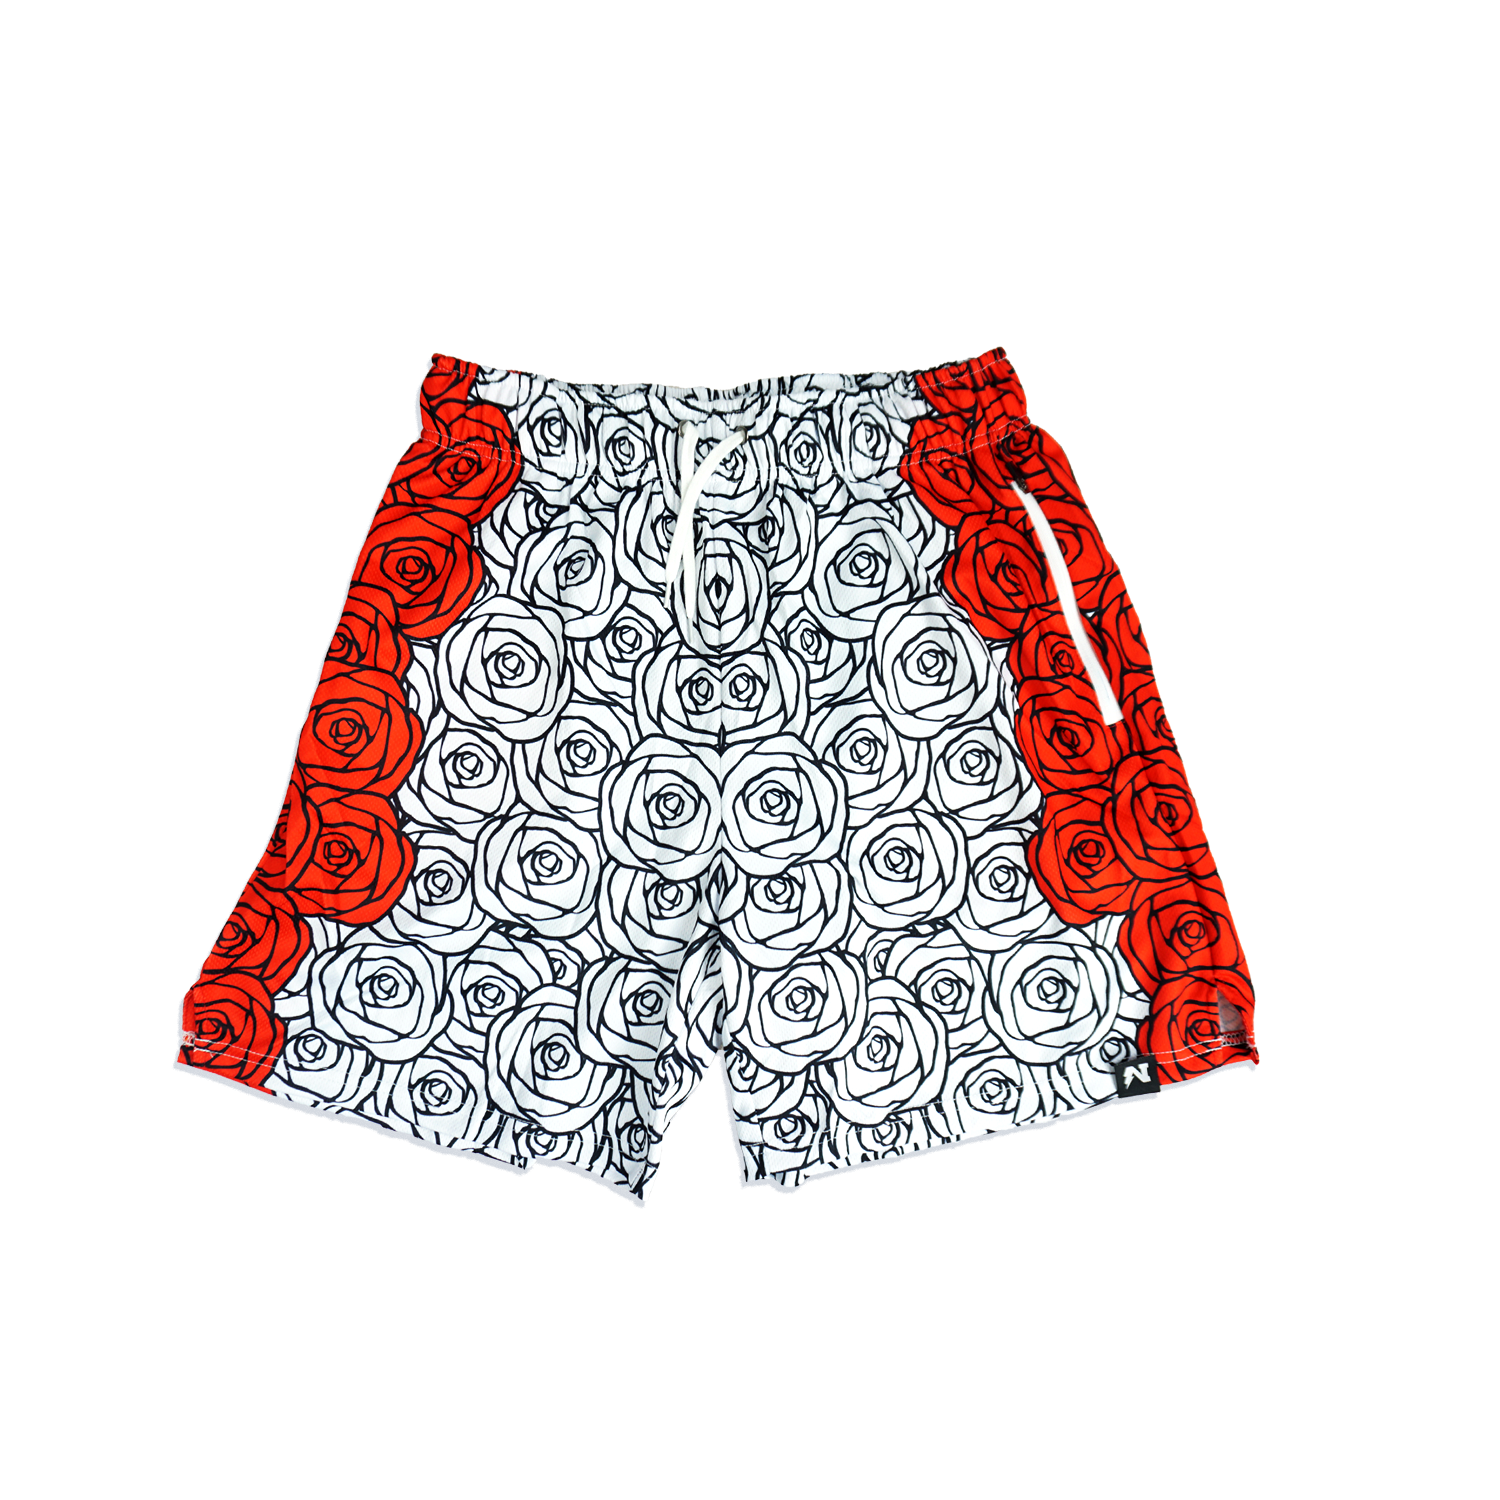 Rose City Shorts - White